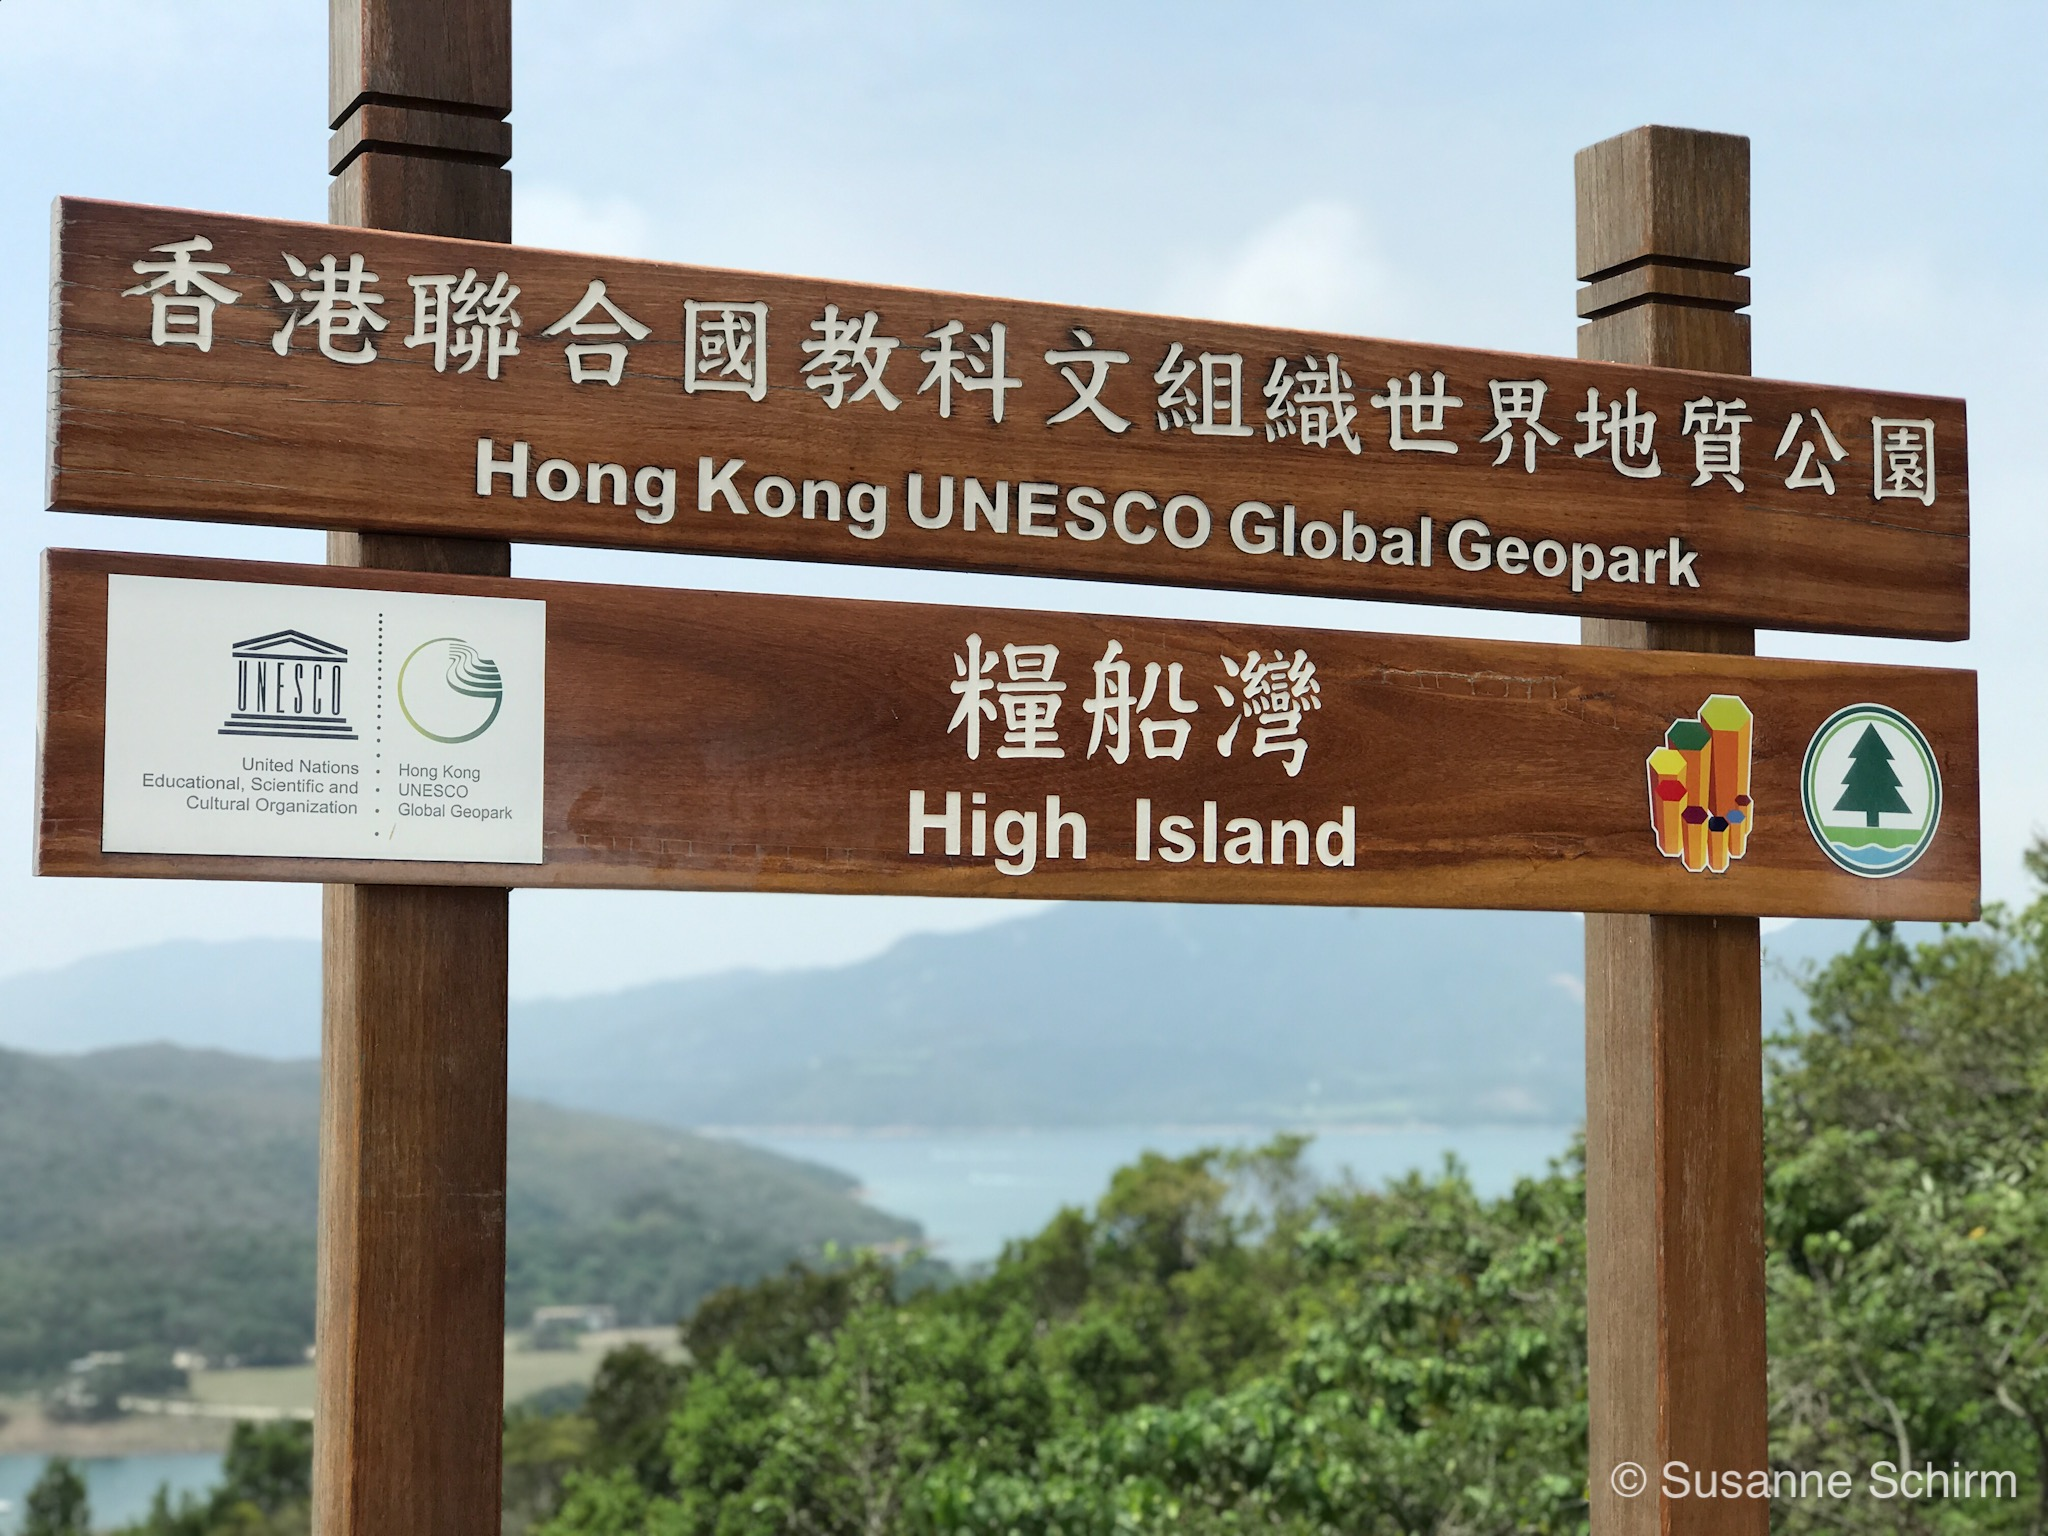 High Island Reservoir im Hong Kong UNESCO Global Geopark